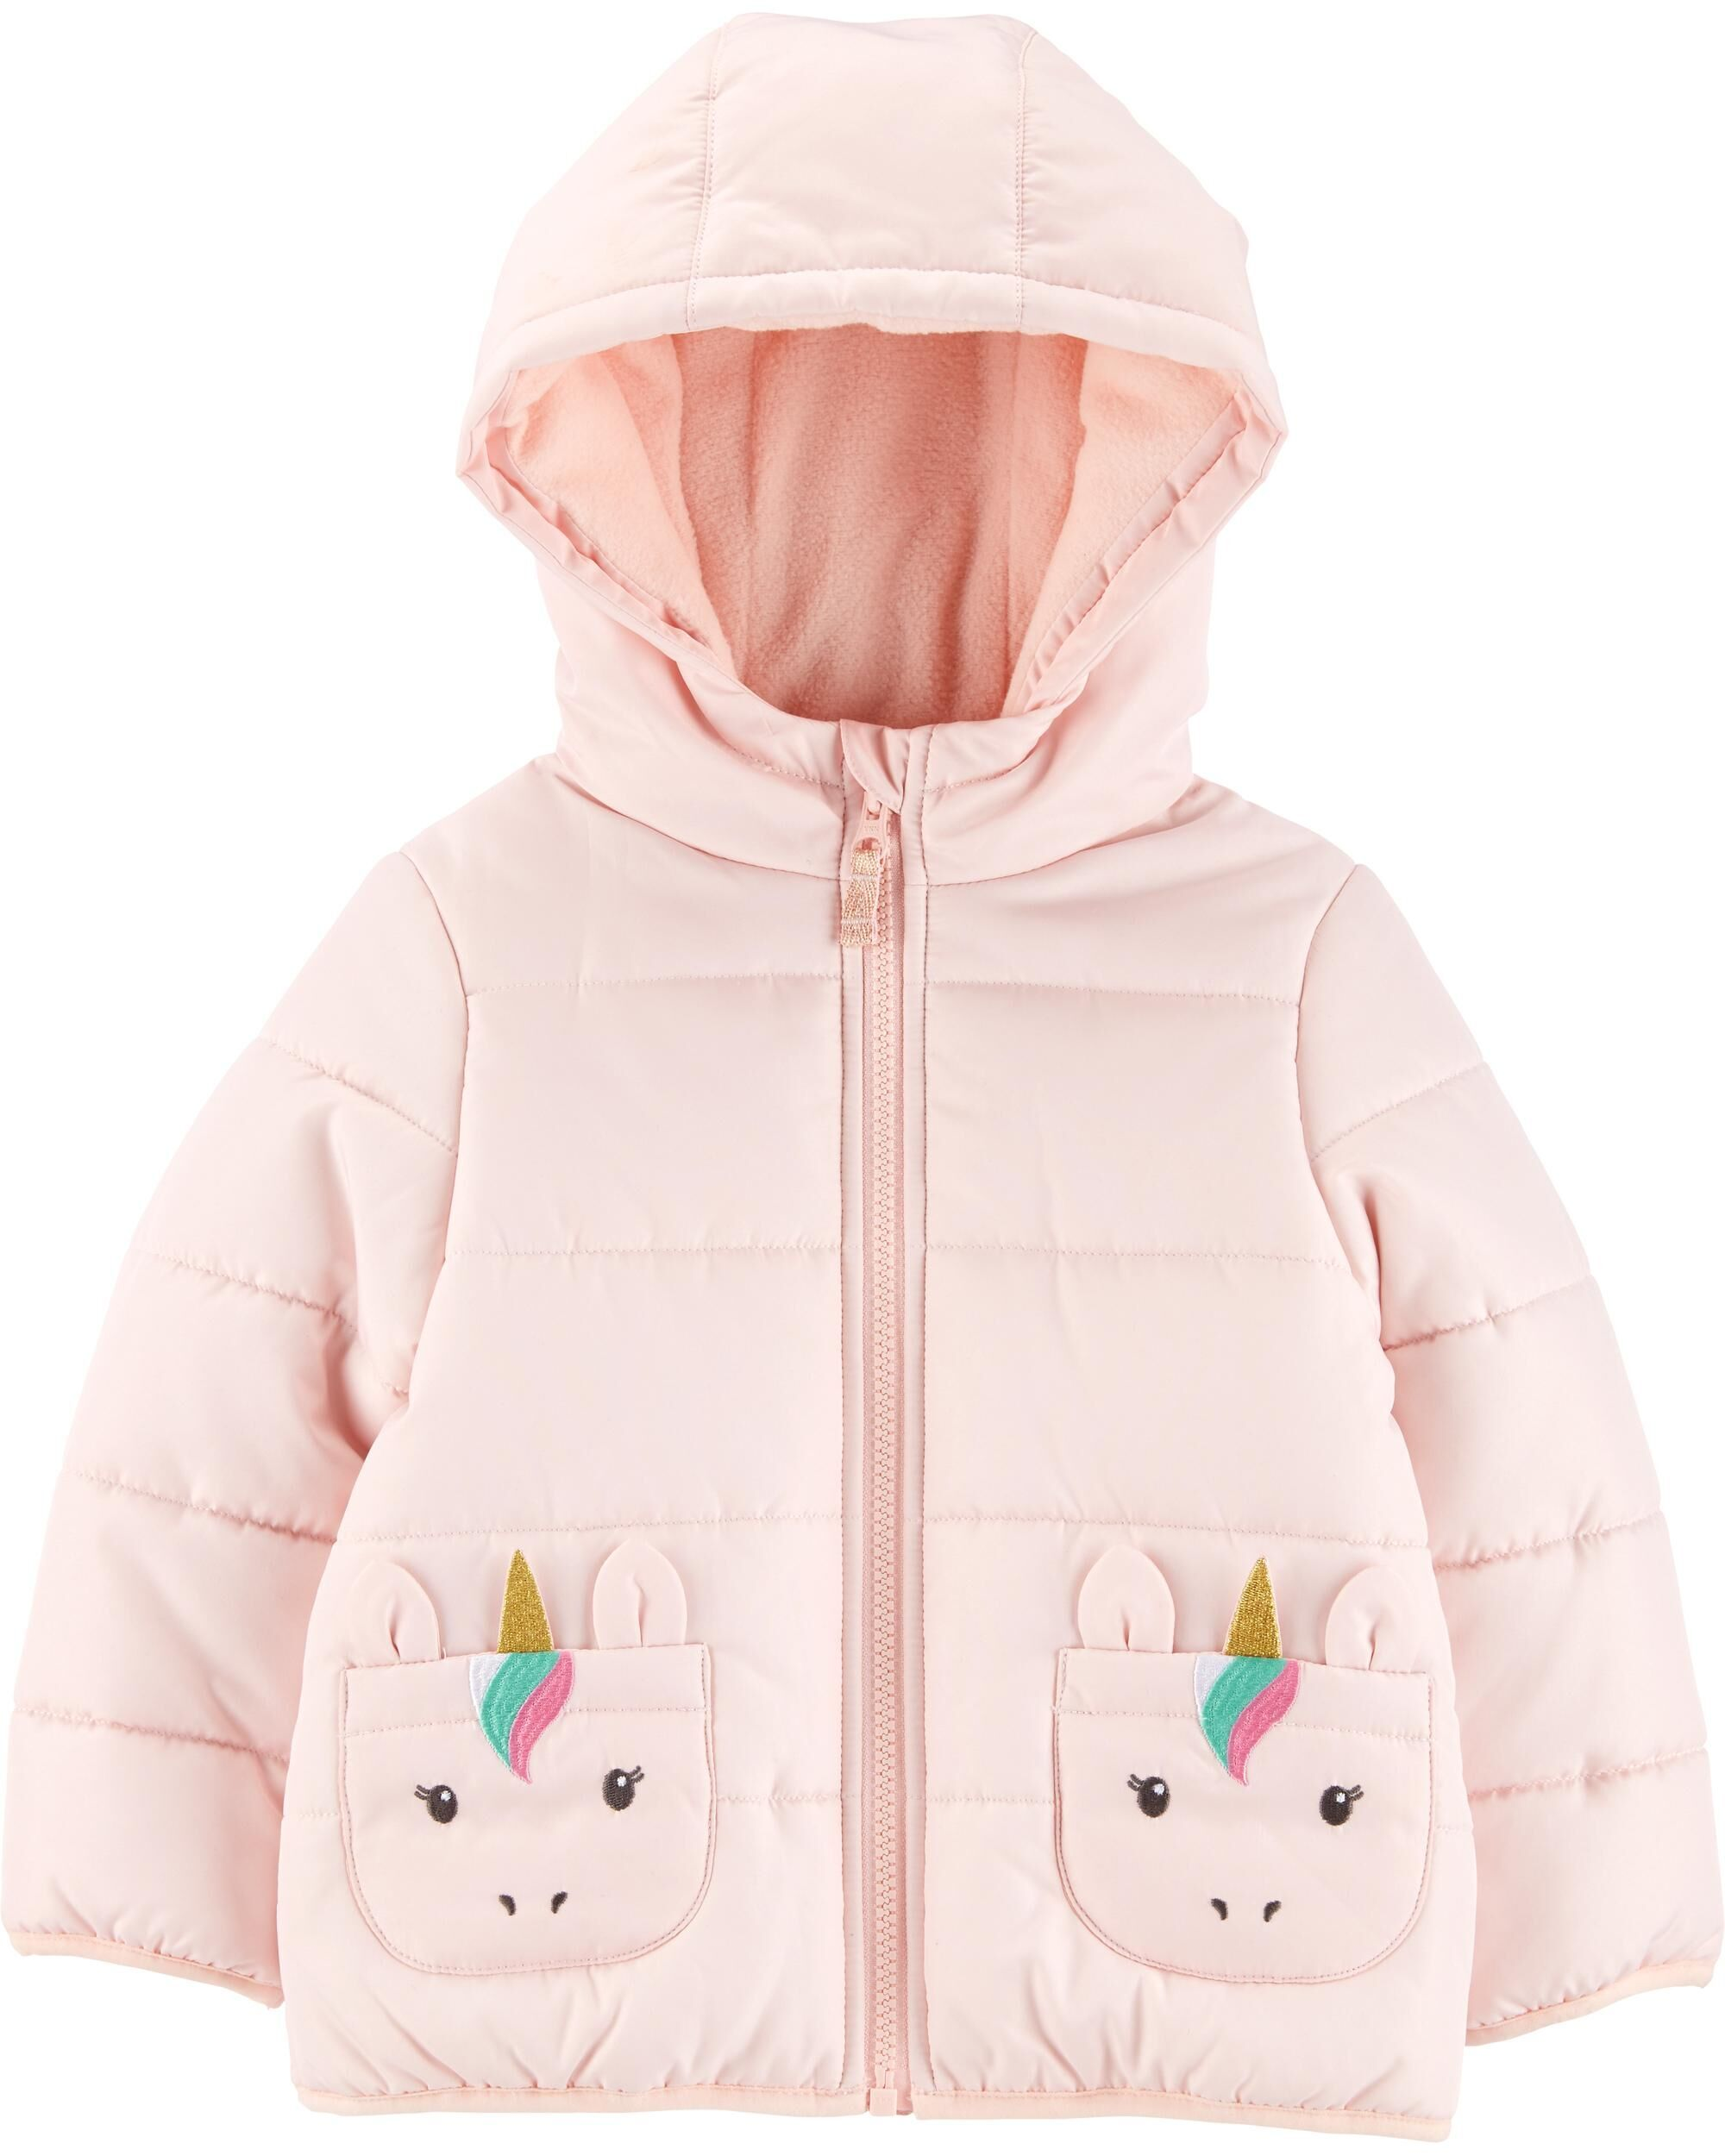 Unicorn Quilted Puffer Jacket Baby Girl Jackets Toddler Girl Jackets Quilted Puffer Jacket